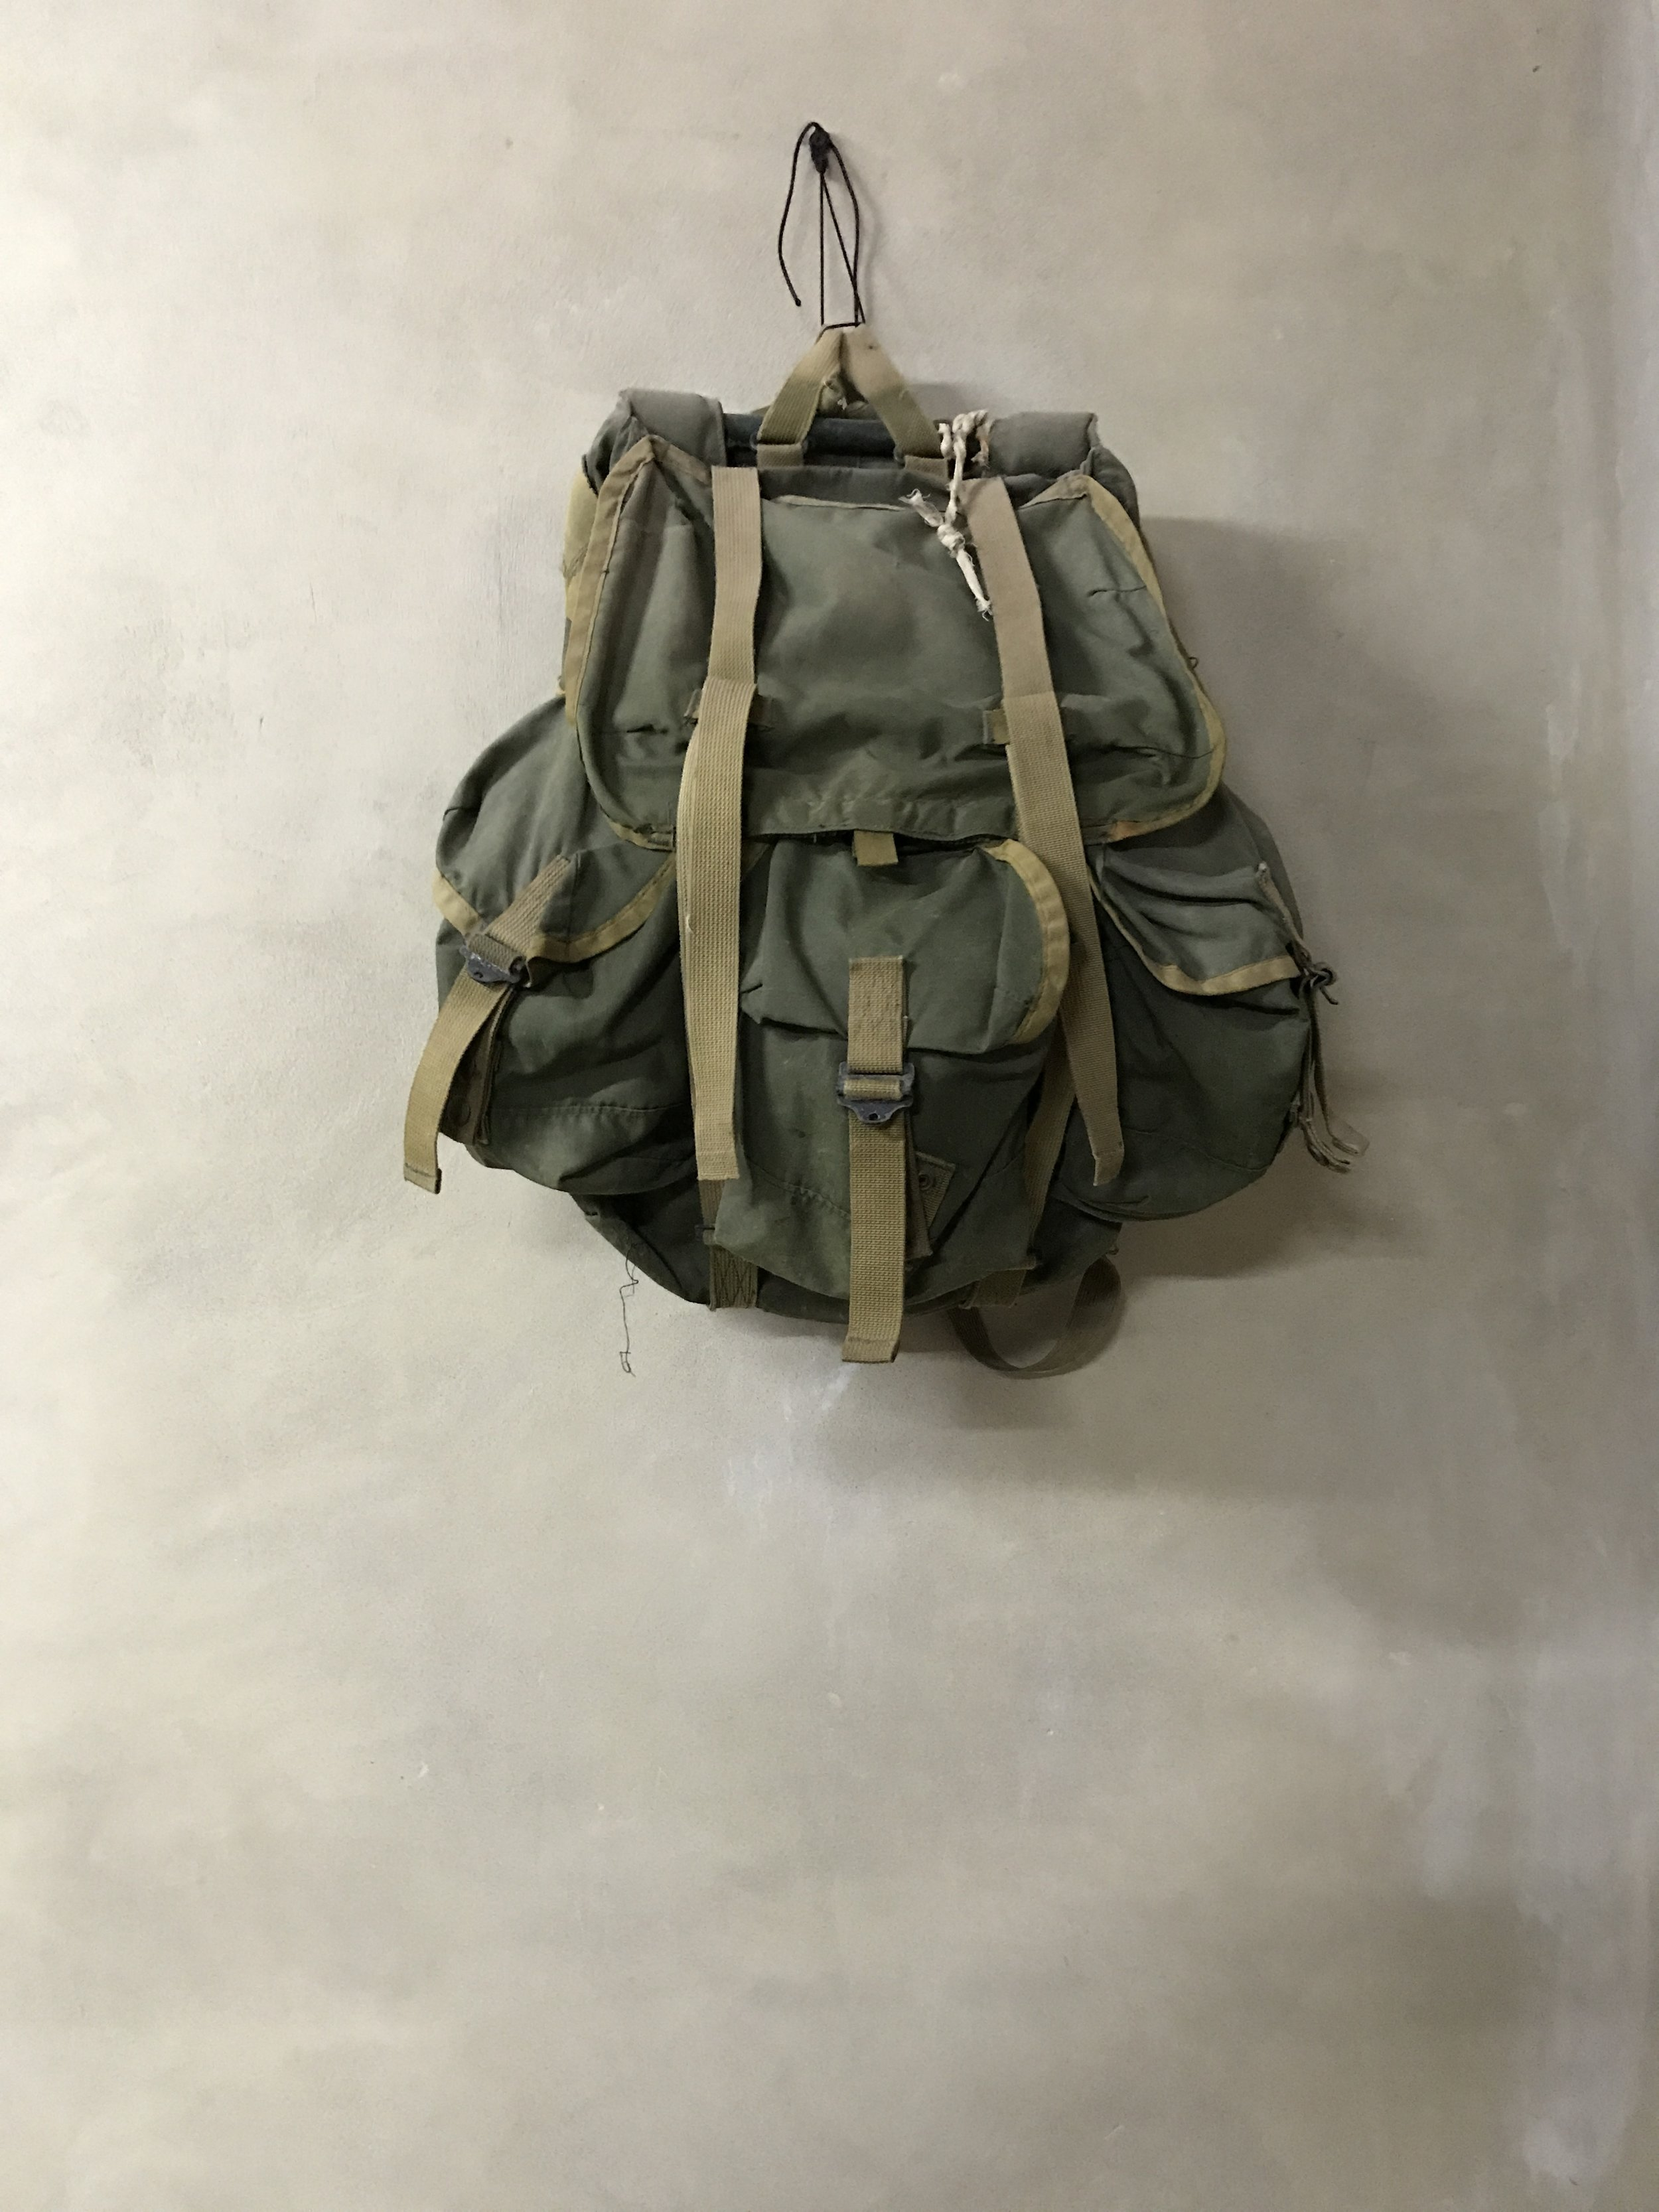 Backpack used by guerrilla